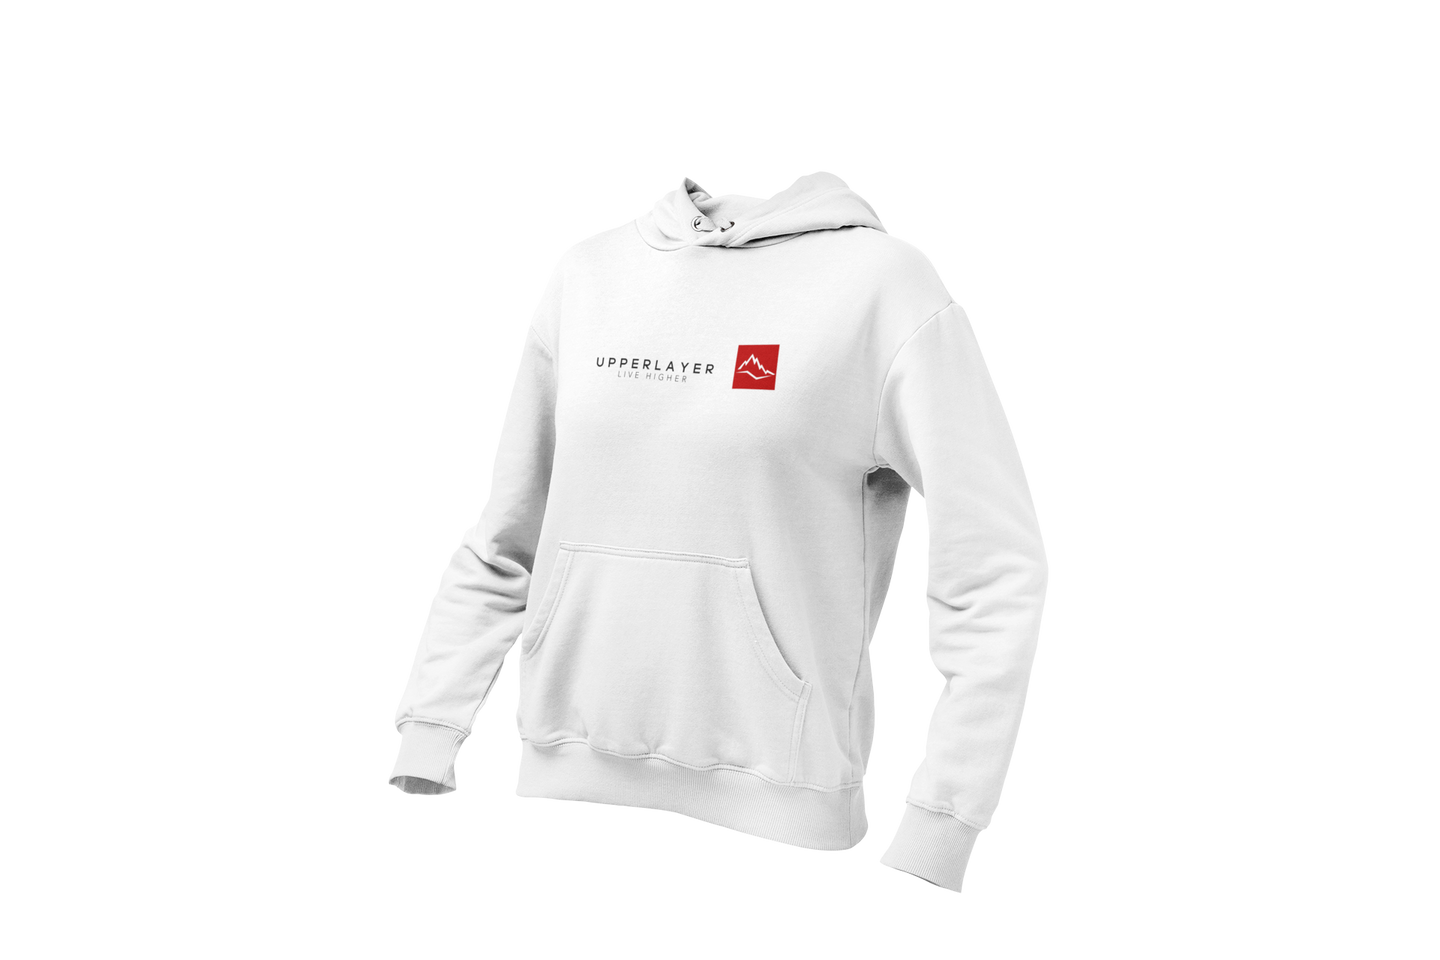 Women's Upperlayer White hoodie with square logo